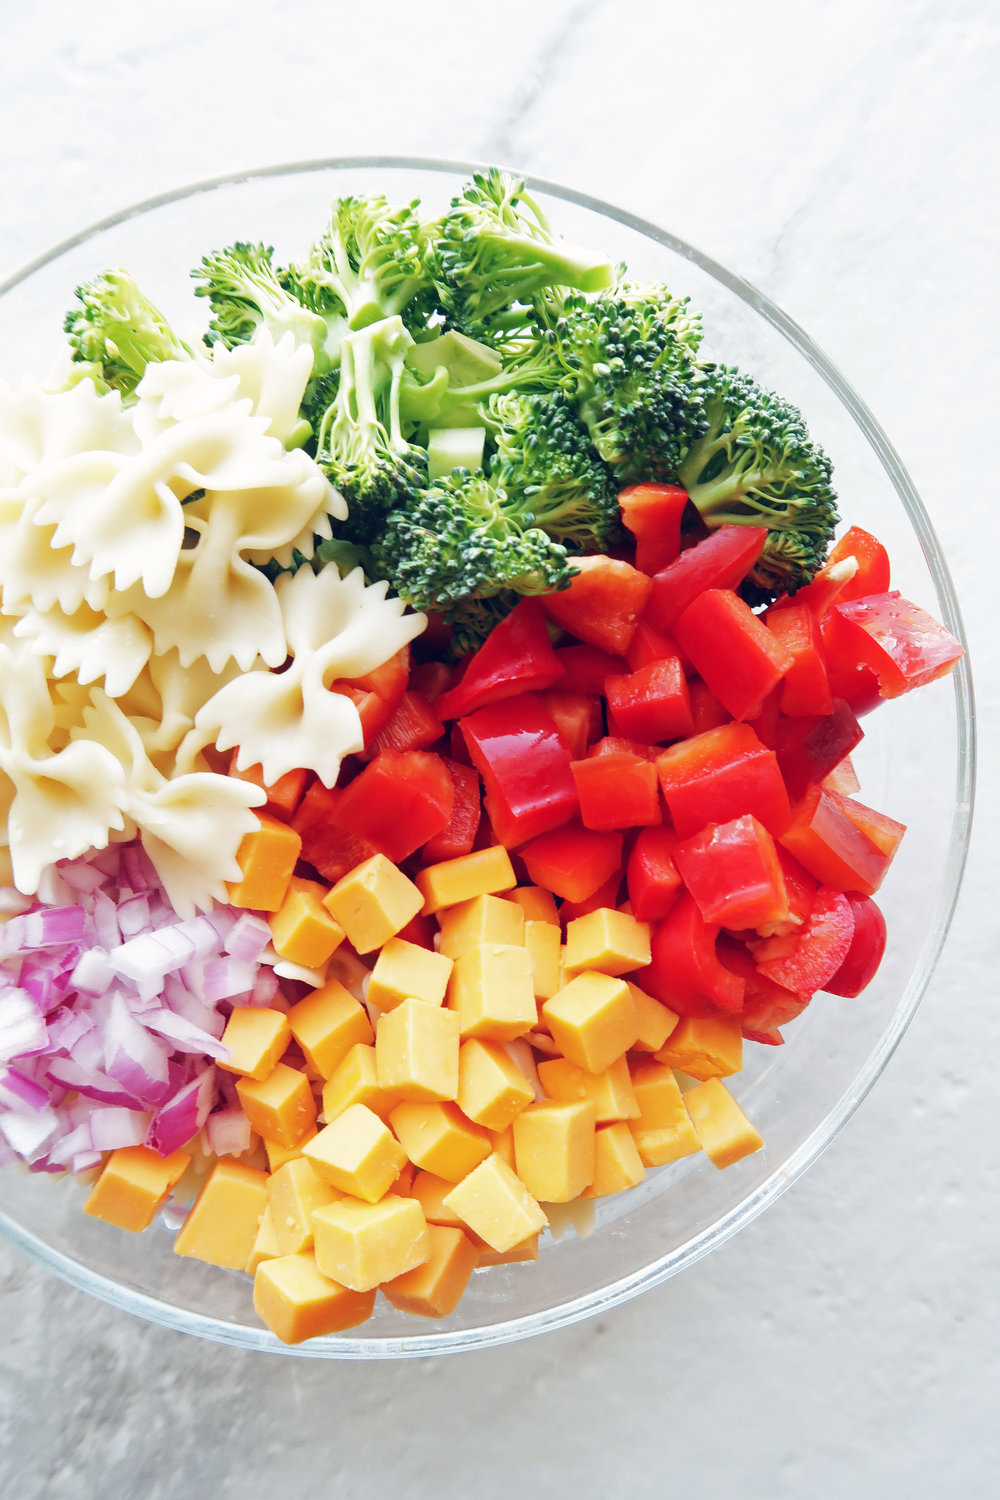 A big bowl of bowtie pasta, broccoli, red bell peppers, cheddar cheese, and red onions.